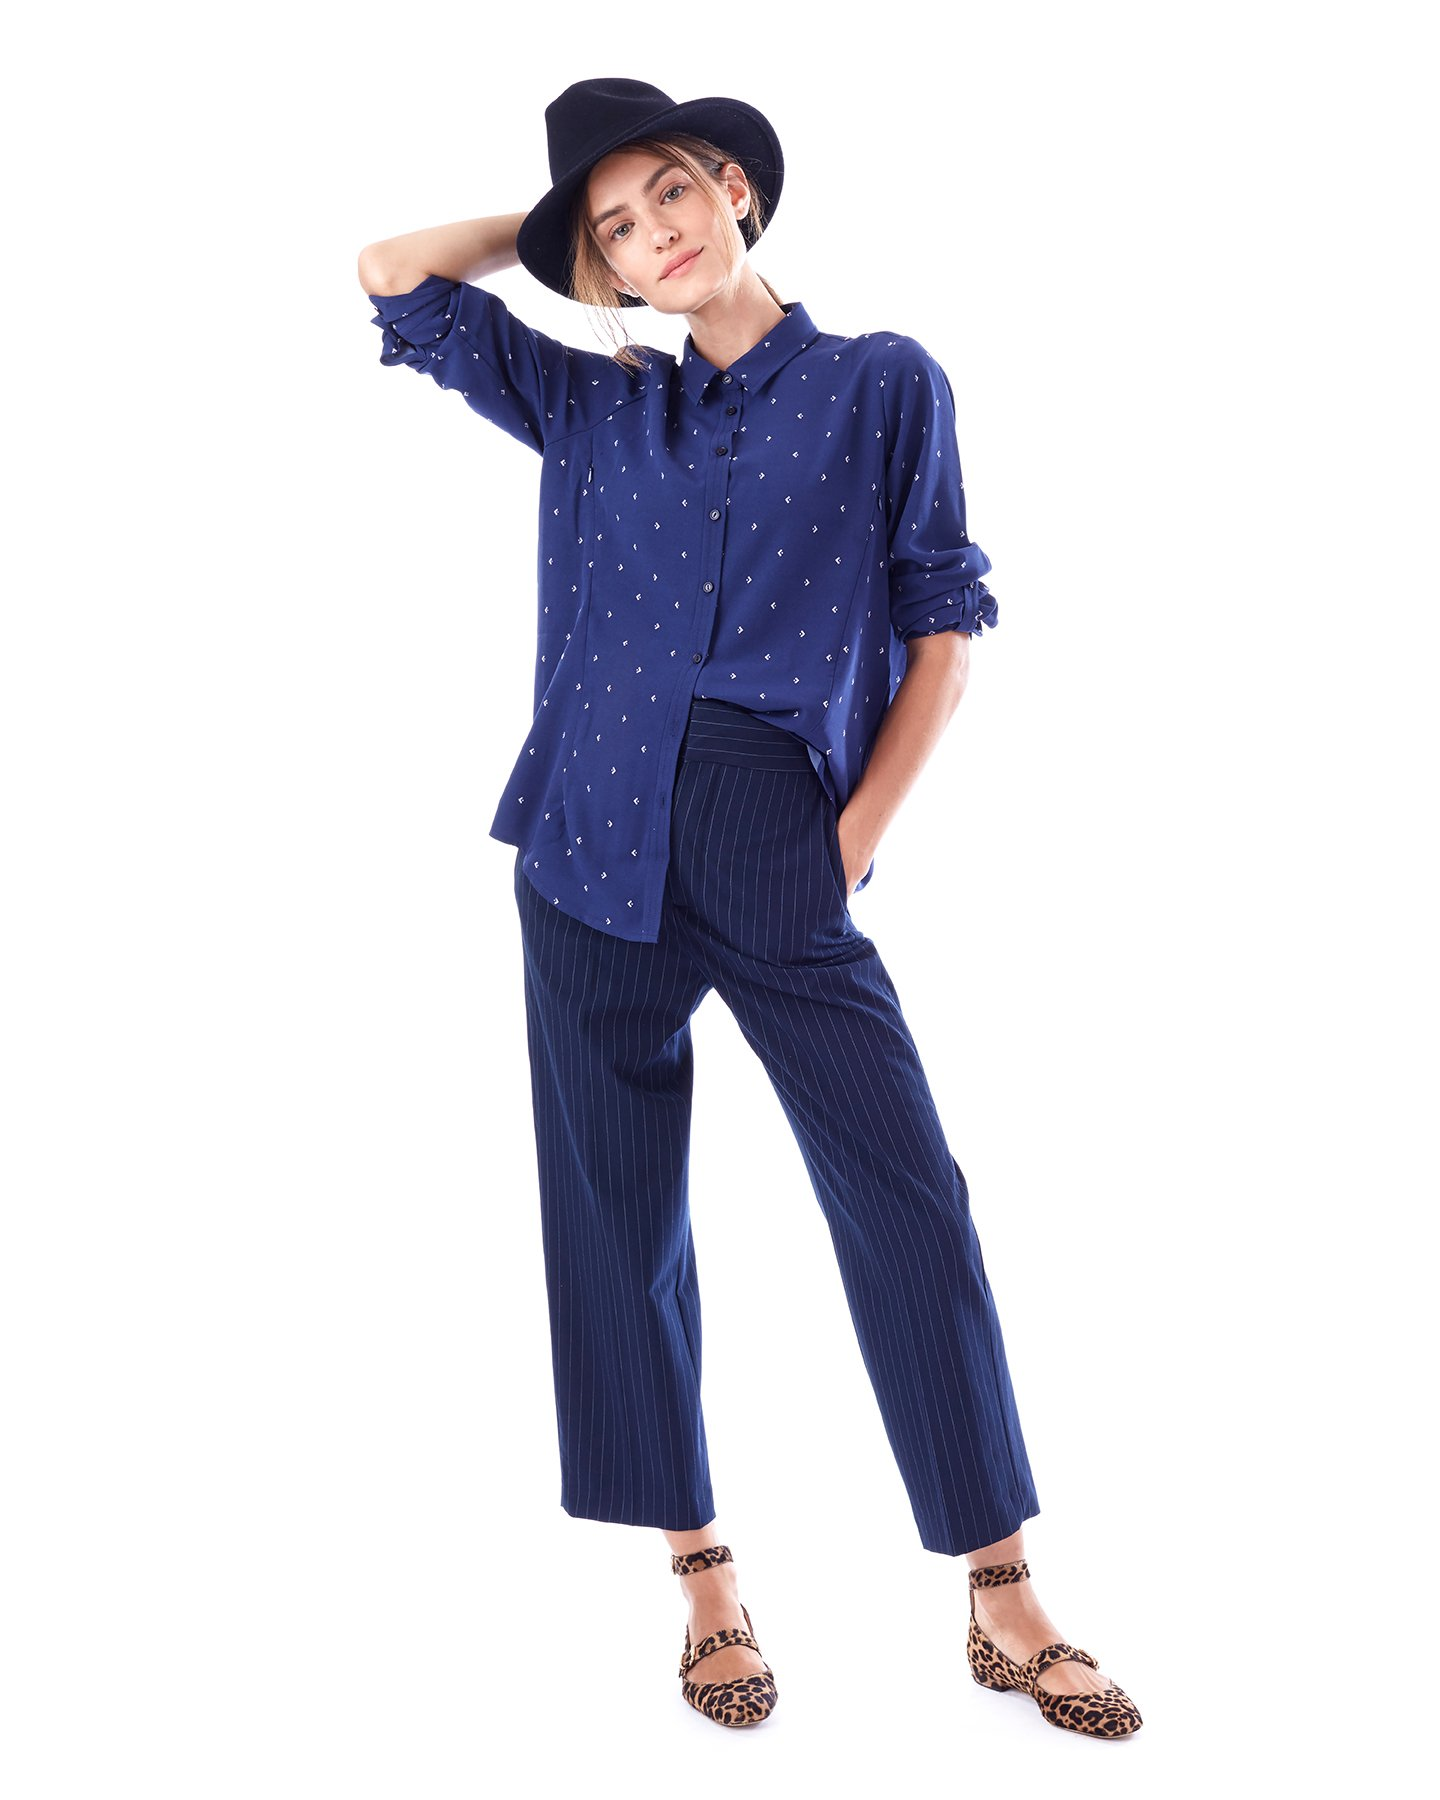 ad53856c0d The riley nursing blouse is a casual yet stylish top for playtime or work.  It s chic yet utilitarian with its functional zippers on both side seams  for ...